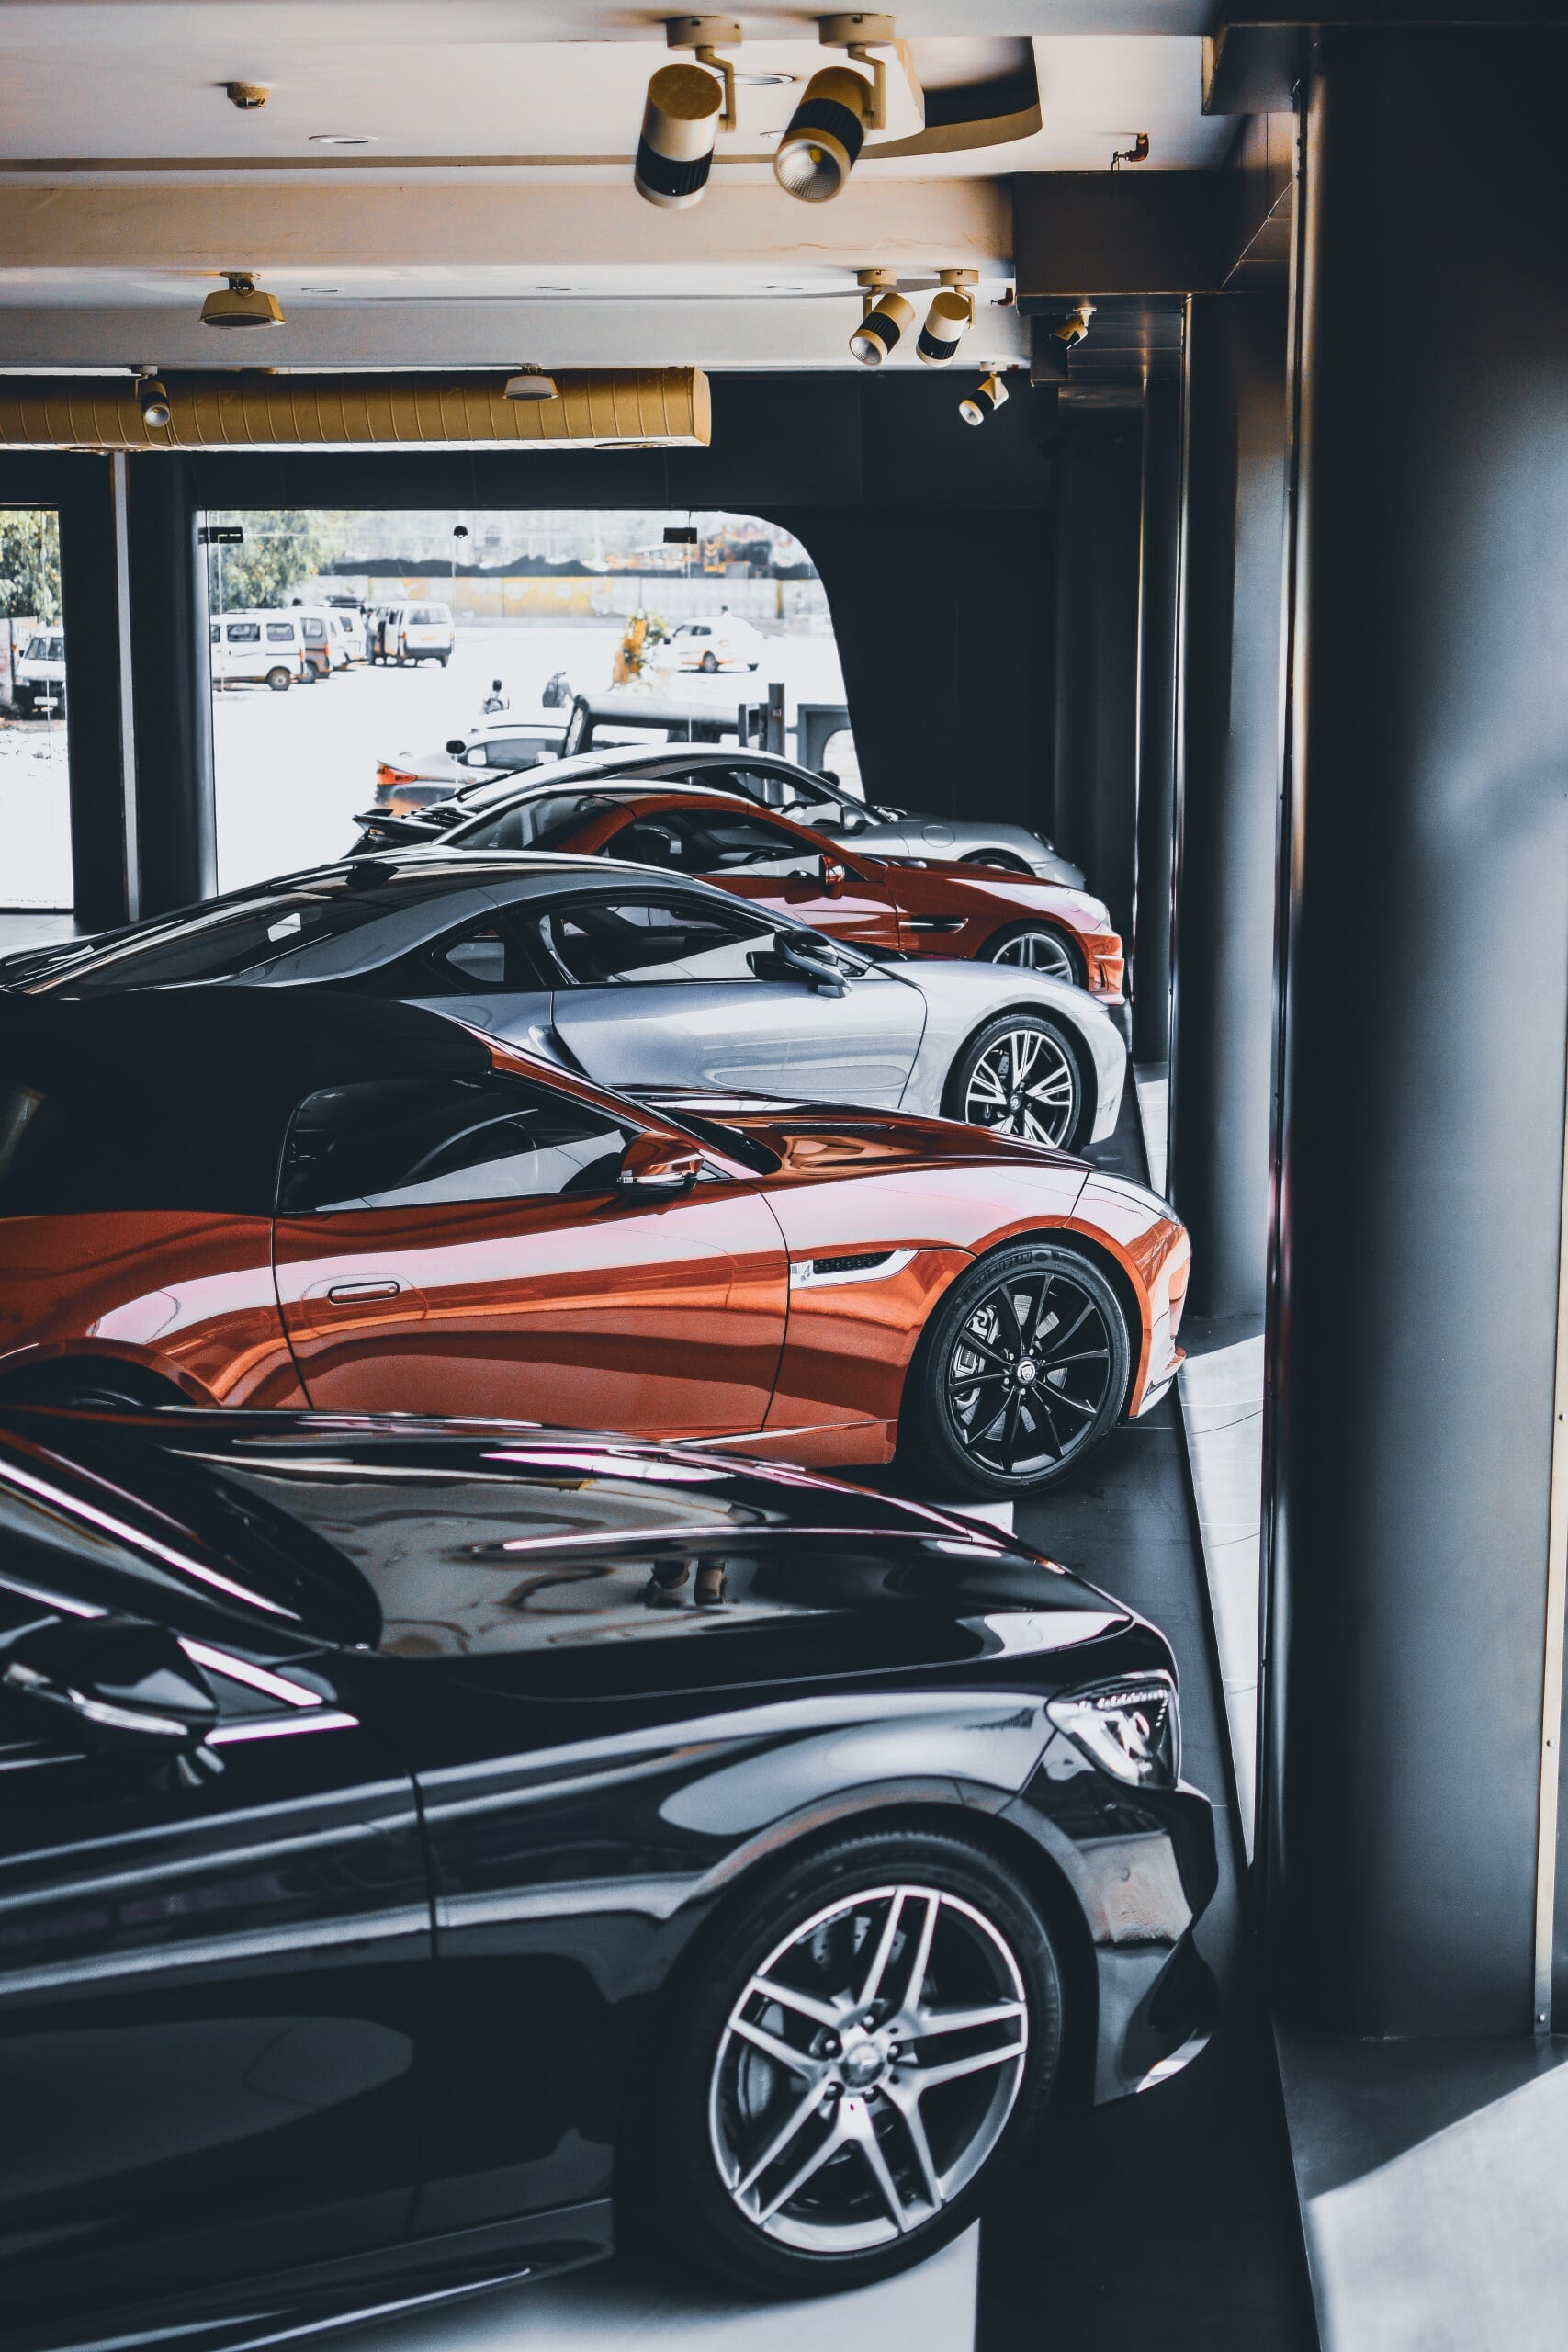 BJ Car Importers – Top 10 New york Base Car Sales and Importer service for all of Car Lovers